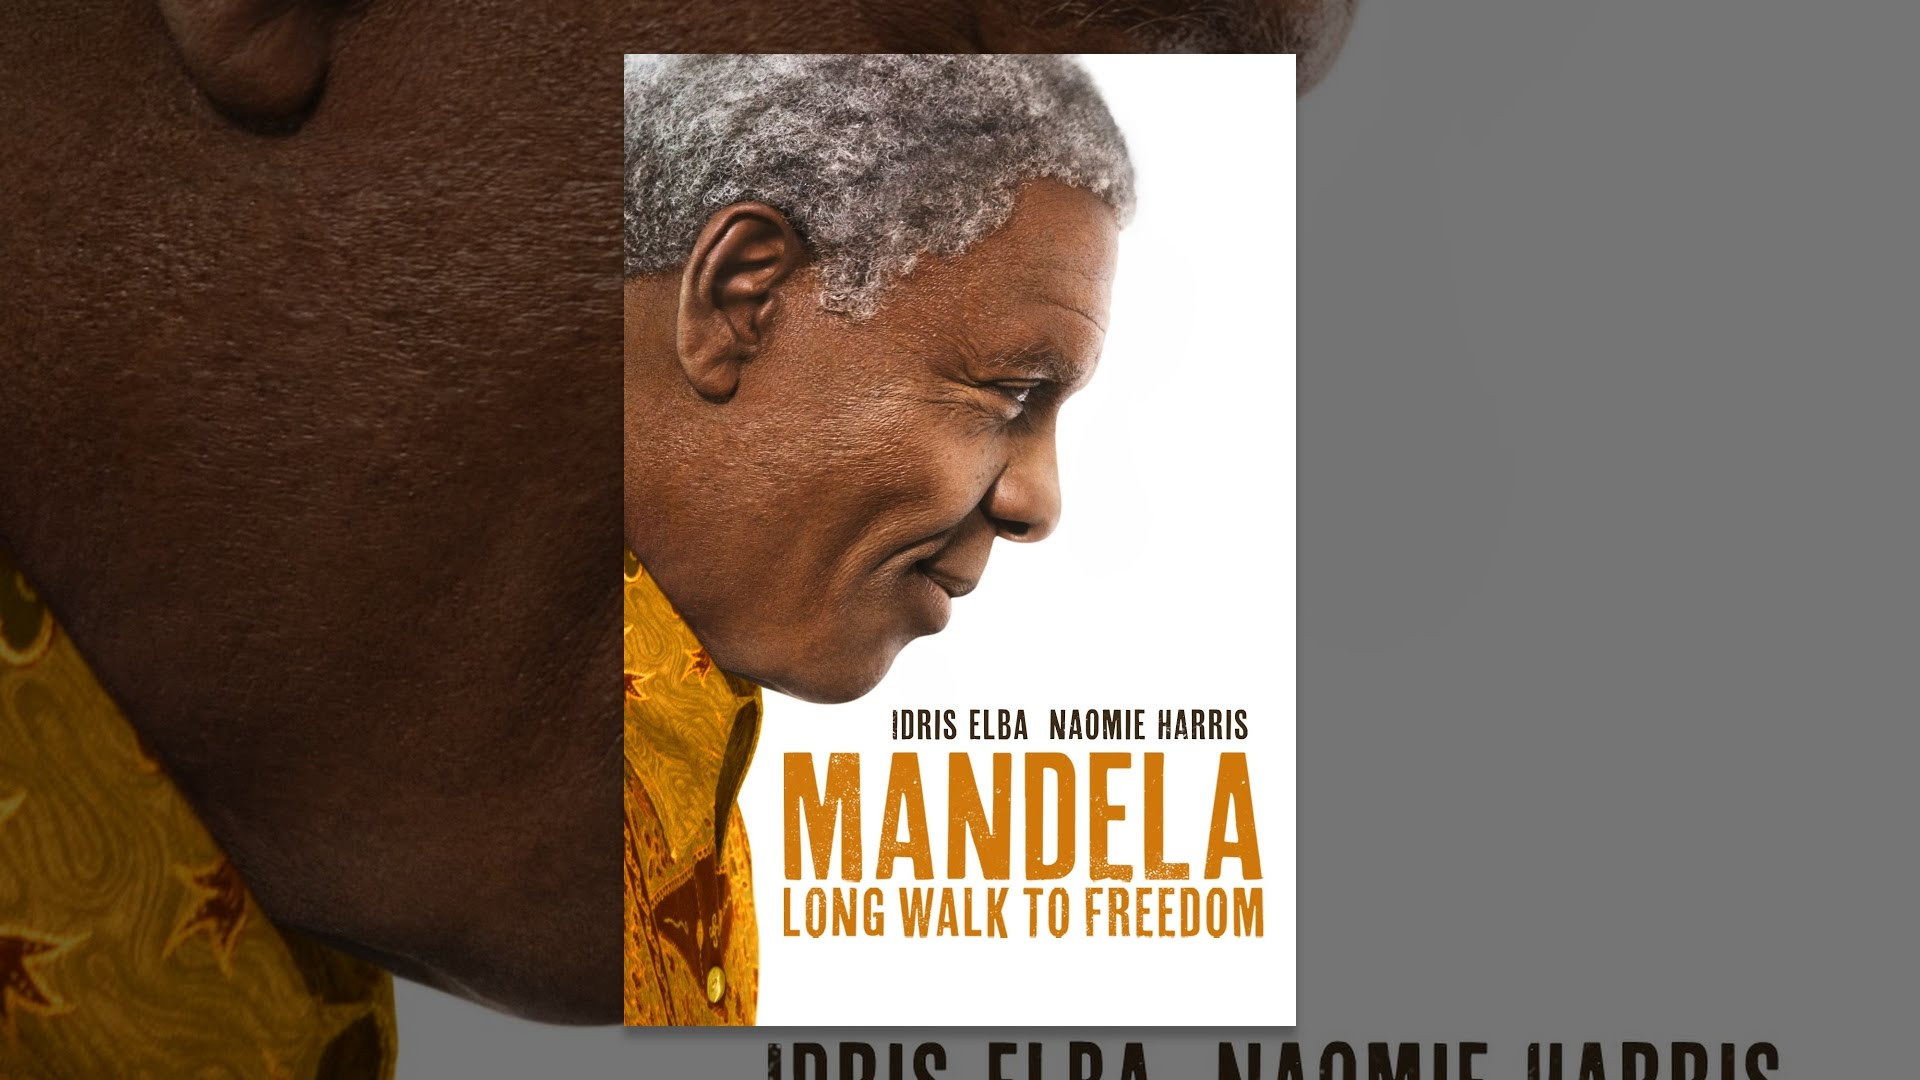 a history of nelson mandelas long walk to freedom Justin chadwick's long walk to freedom is the life story of nelson mandela  justin chadwick's long walk to freedom is the life story of shape history.